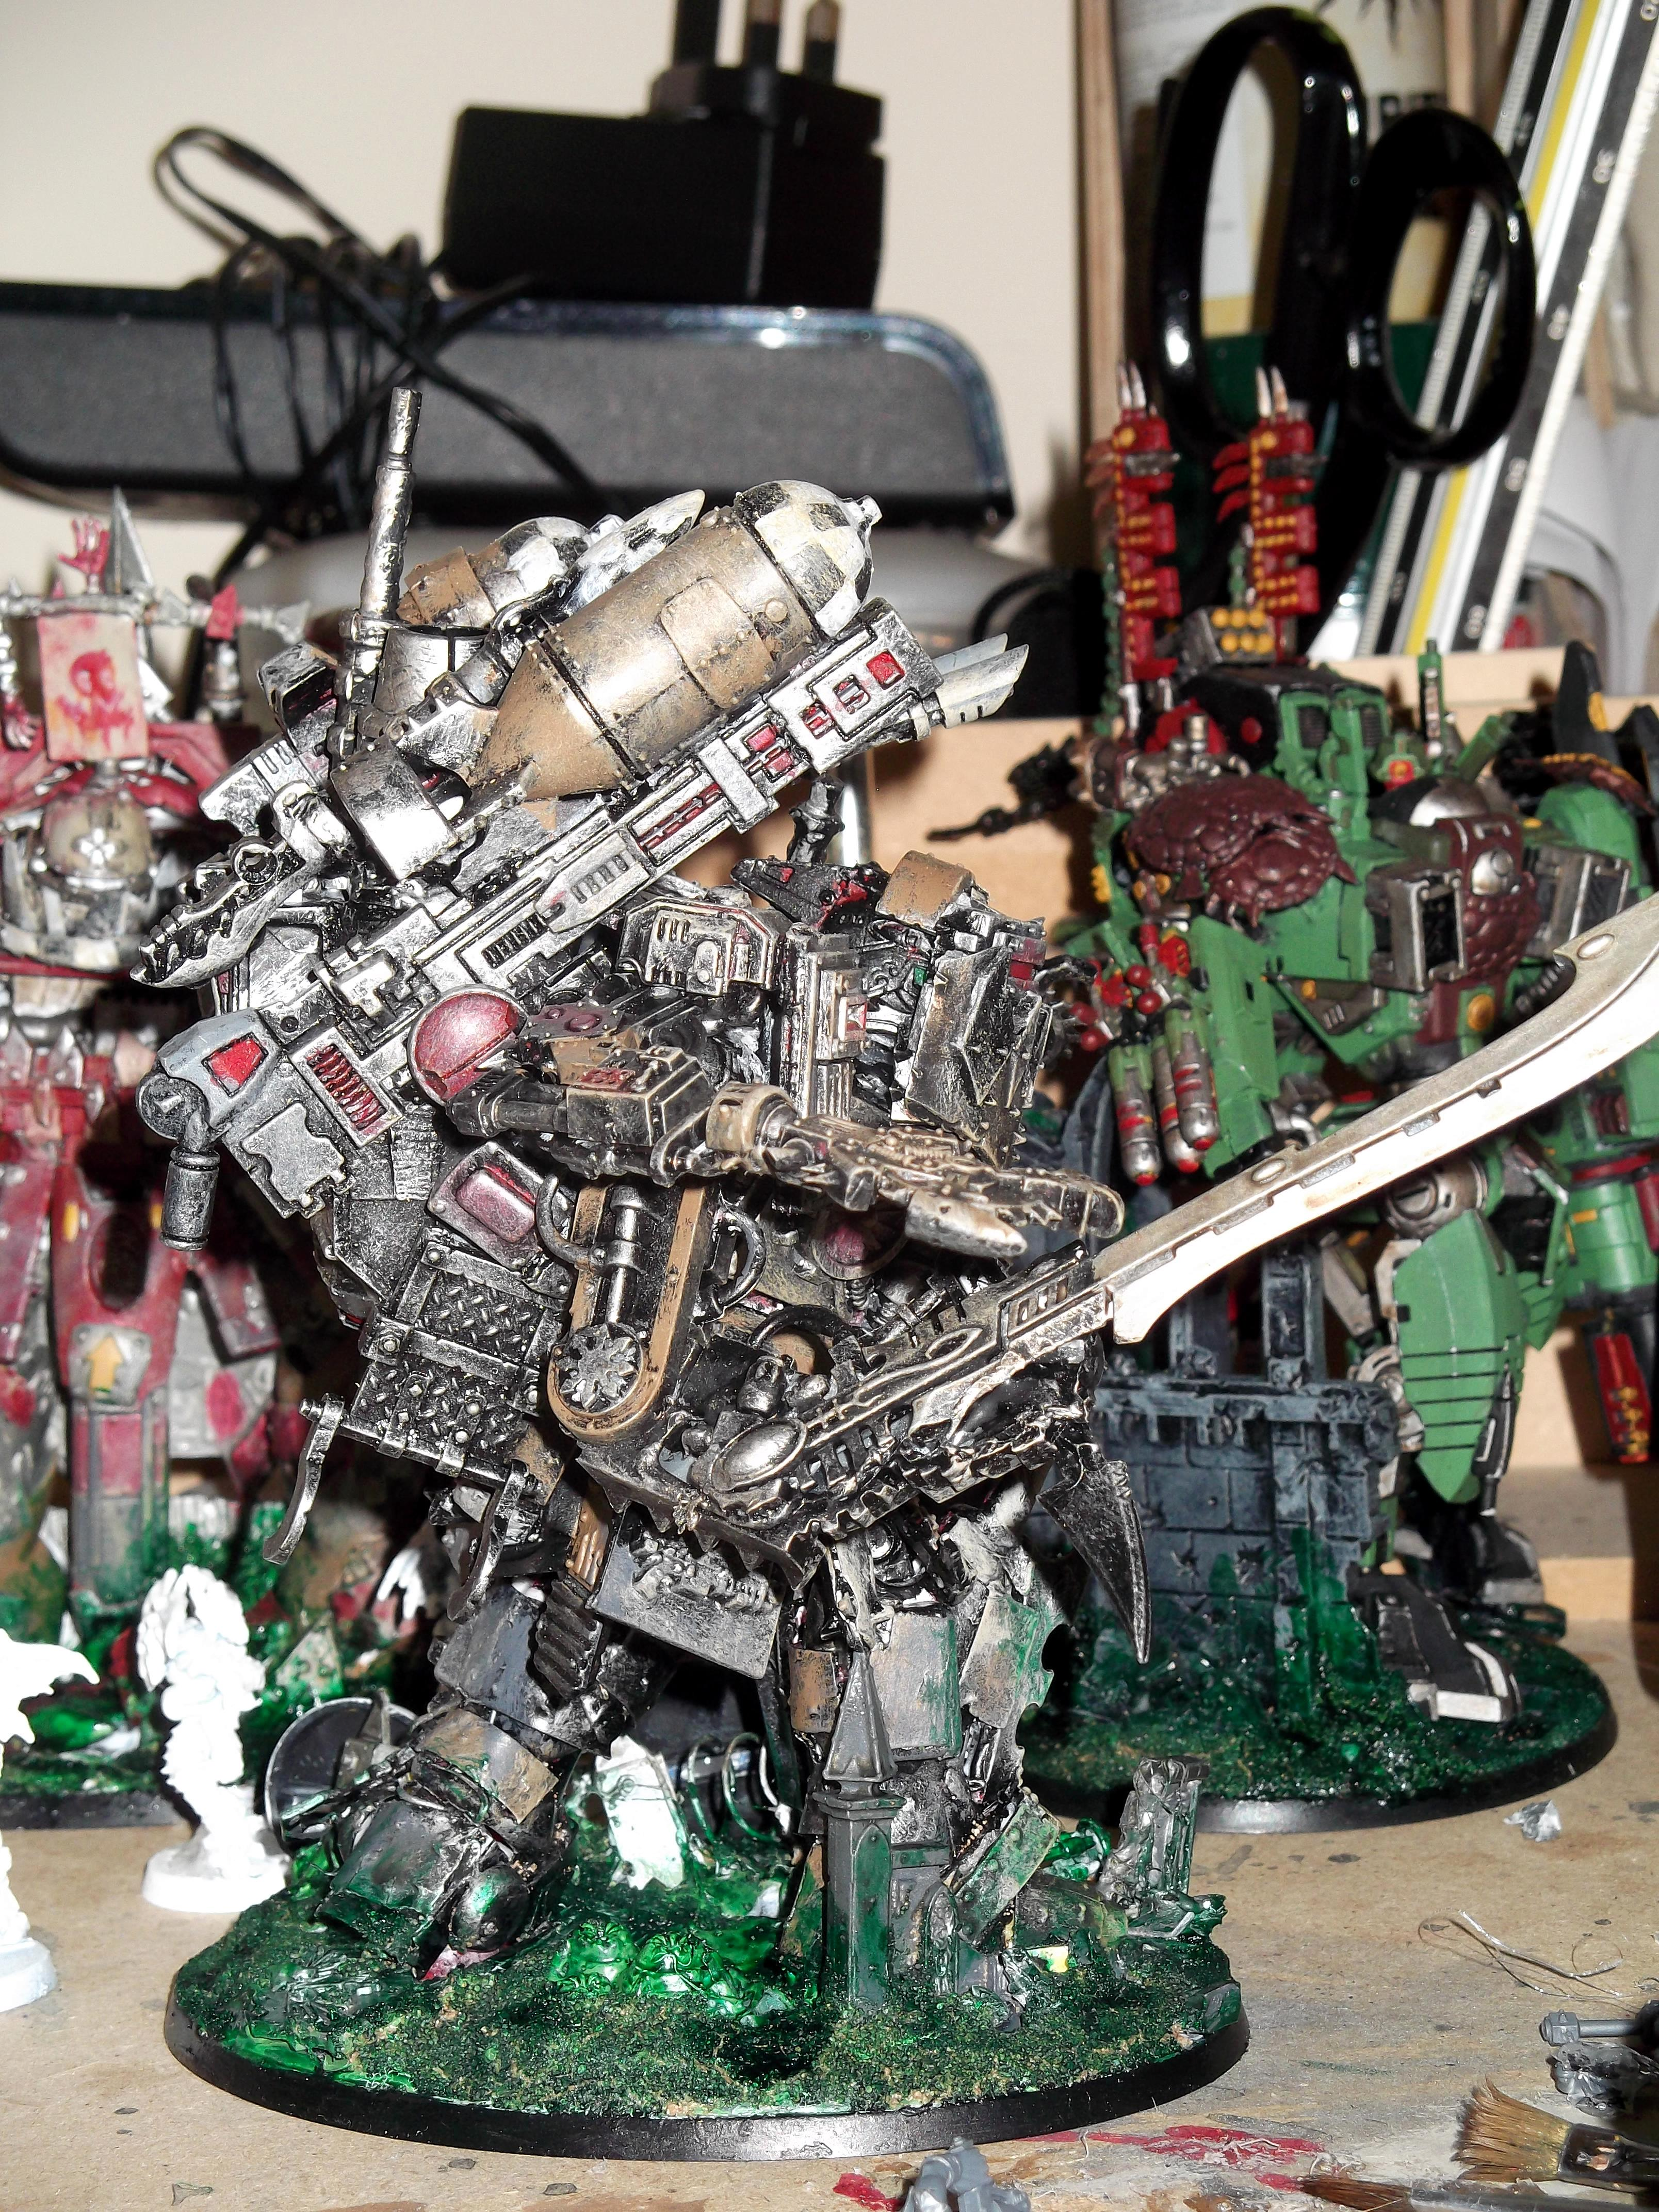 Bits, Boltgutz, Conversion, Dread Mob, Dreadnought, Lobba, Looted, Marine Abuse, Mega Dread, Meka Dread, Orks, Warhammer 40,000